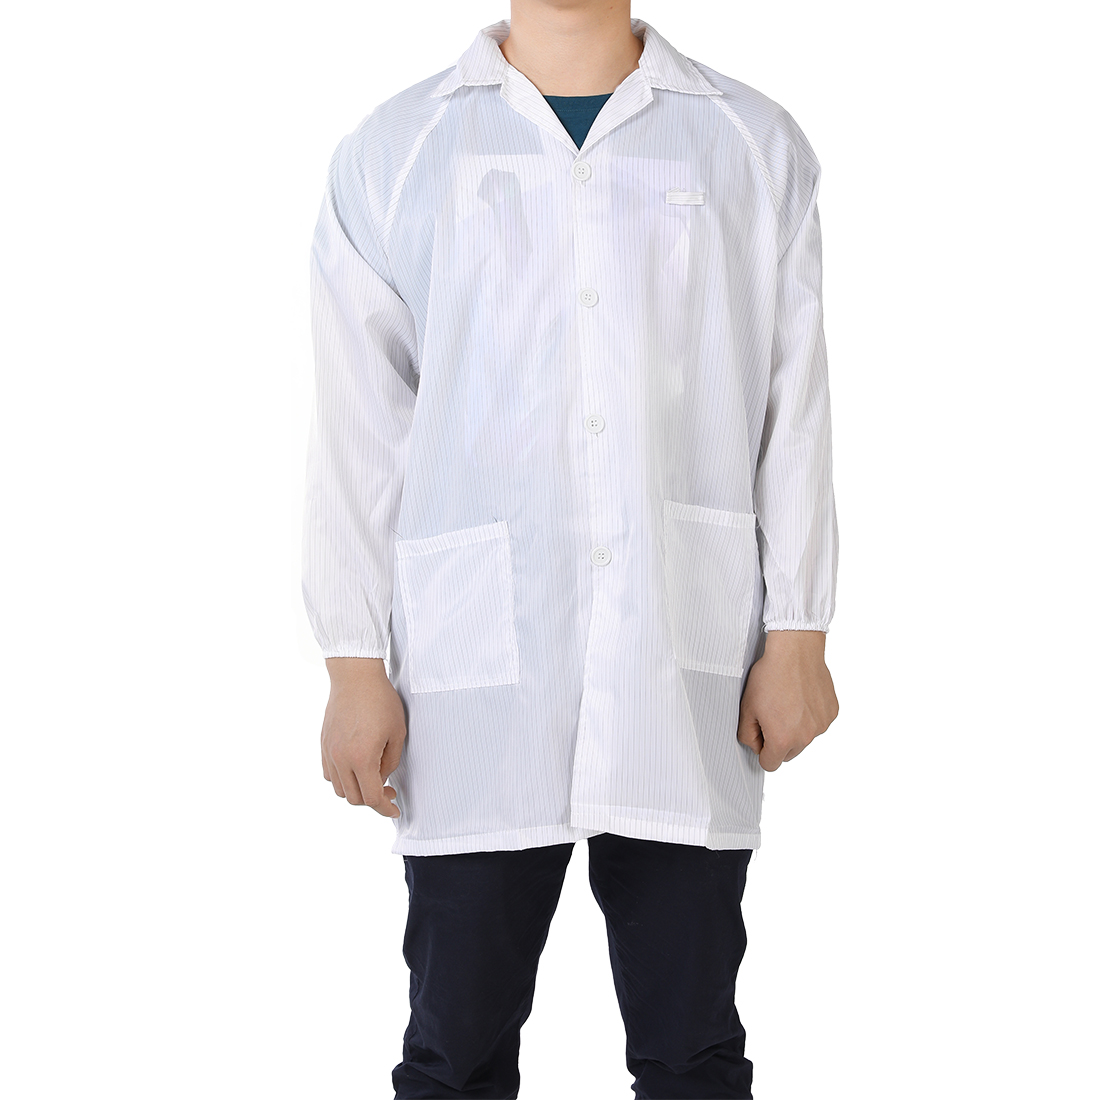 Anti Static Overalls Unisex ESD Lab Coat Button Up XL White